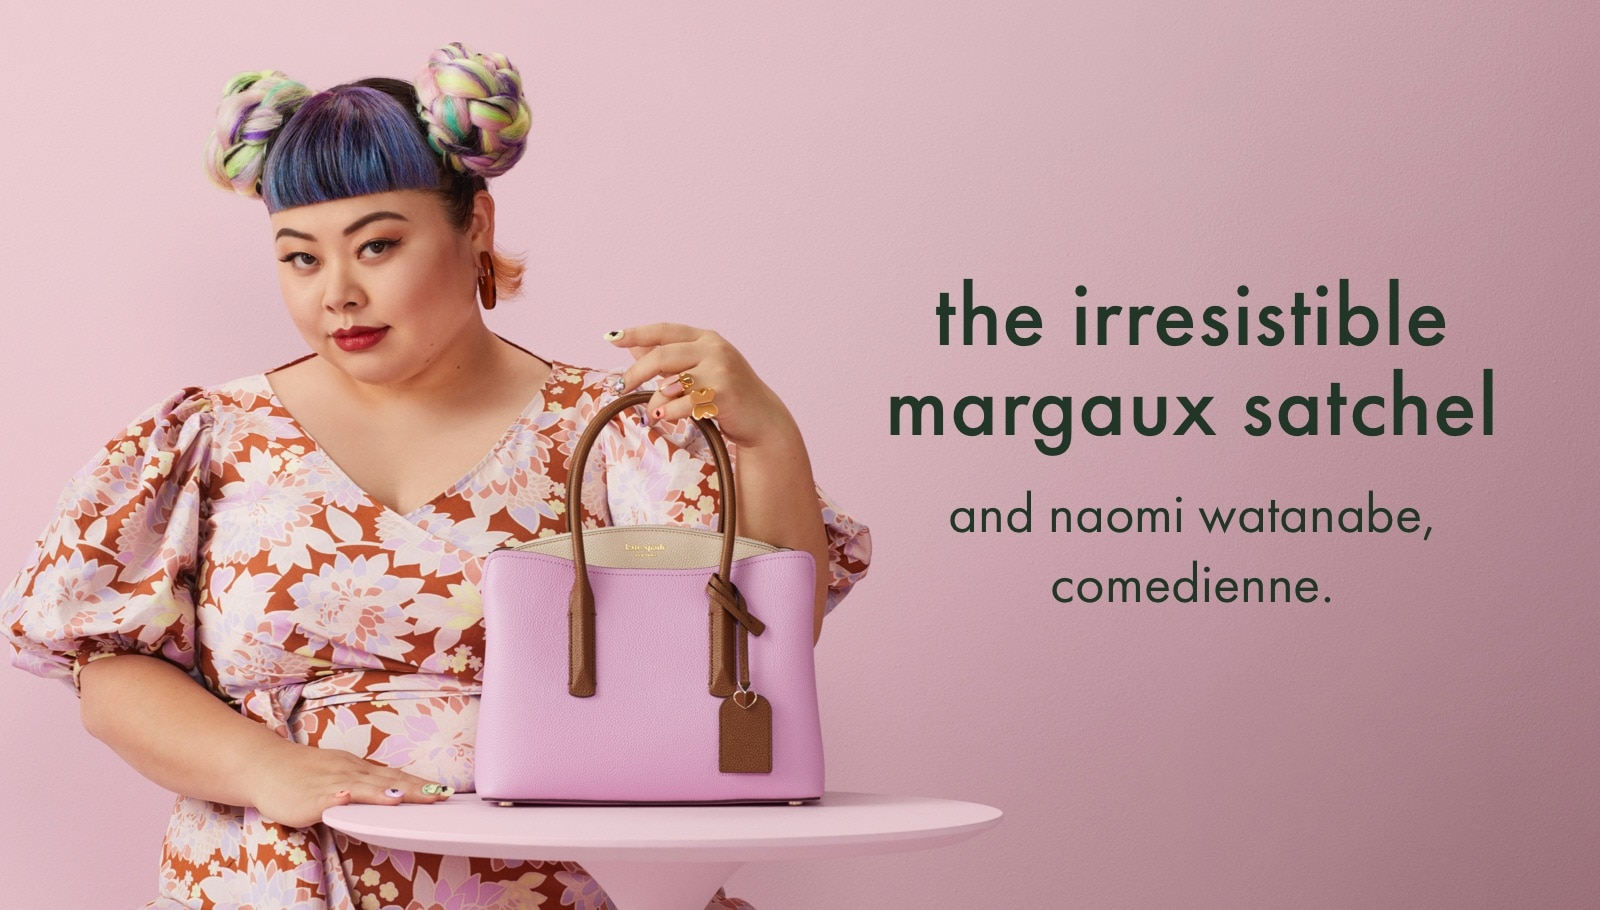 the irresistible margaux satchel